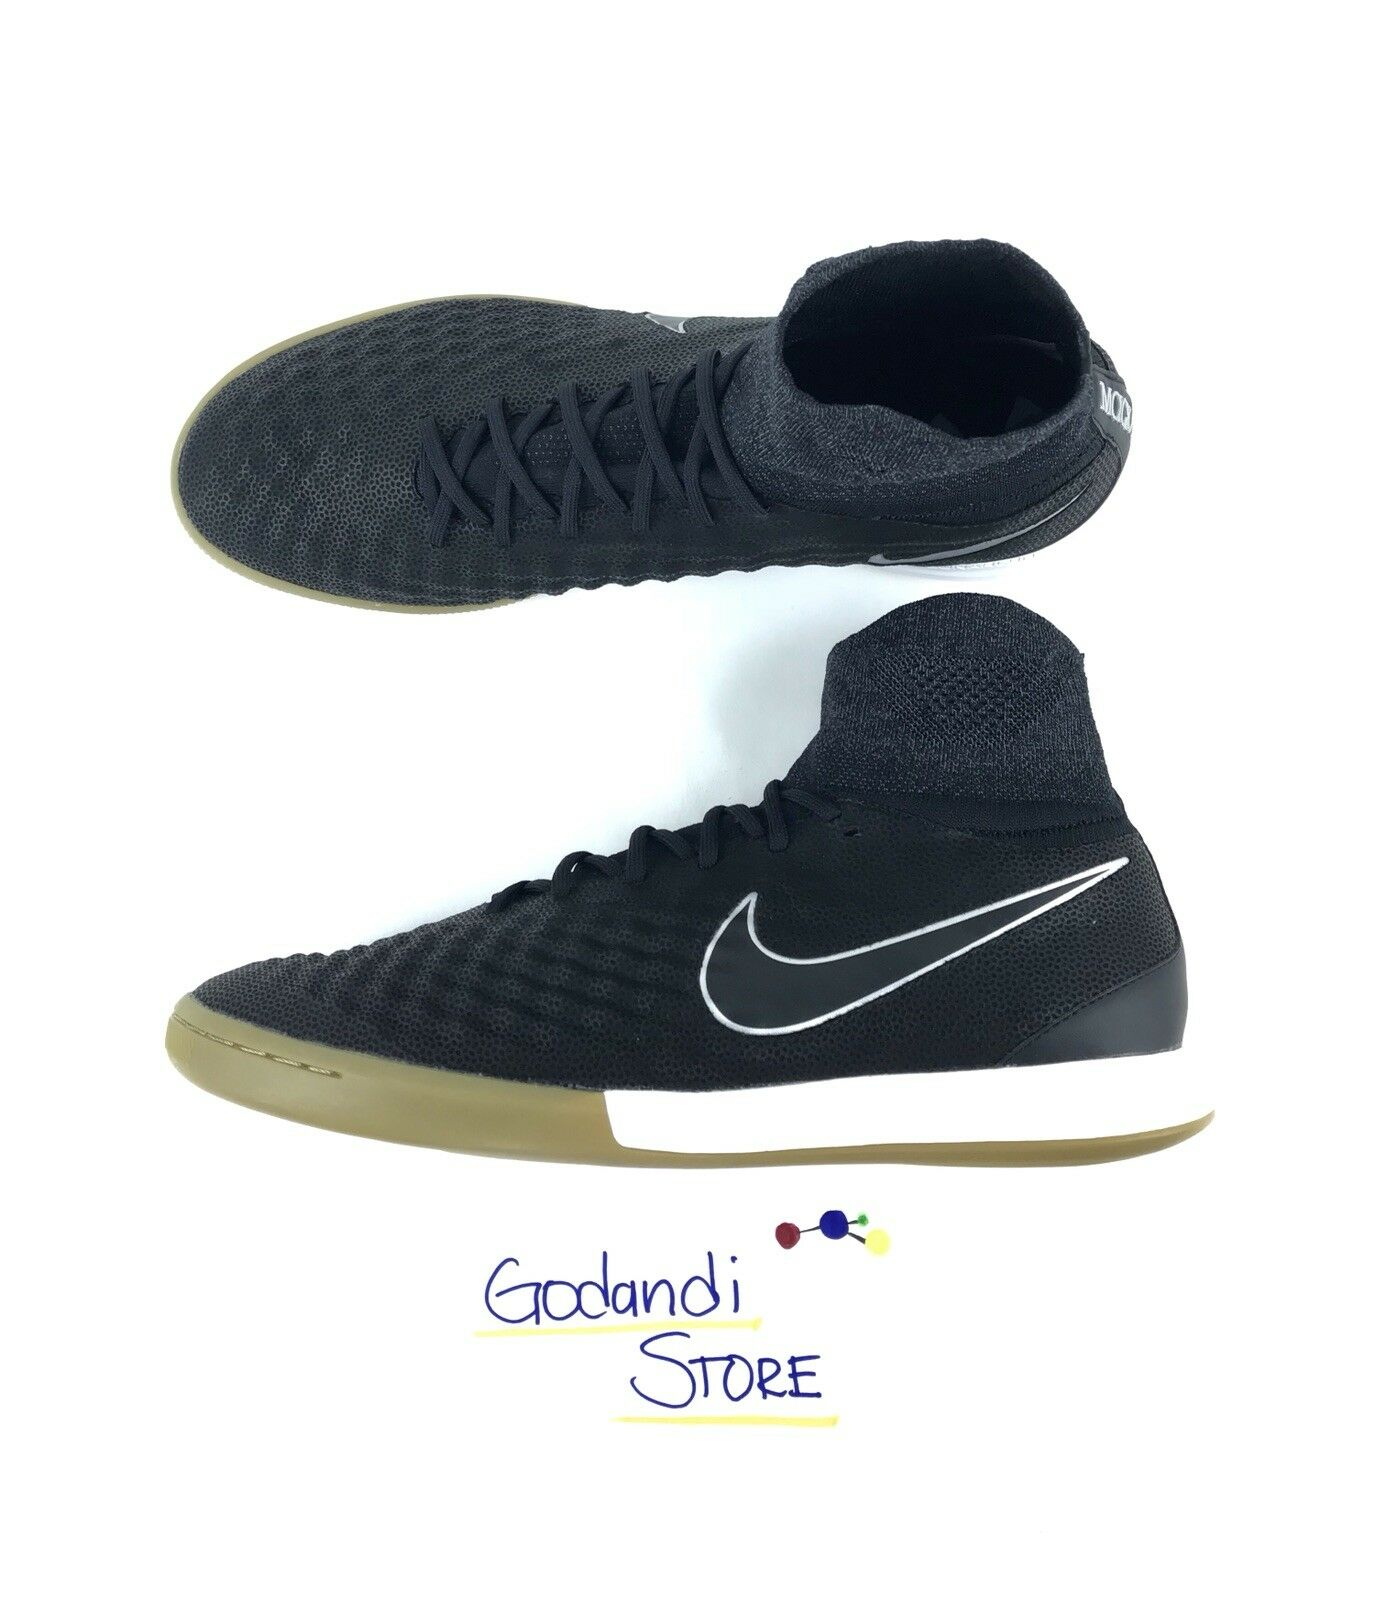 NIKE Men Soccer Shoes S 12 Magistax Proximo II TC IC Tech Craft Black 852507-001